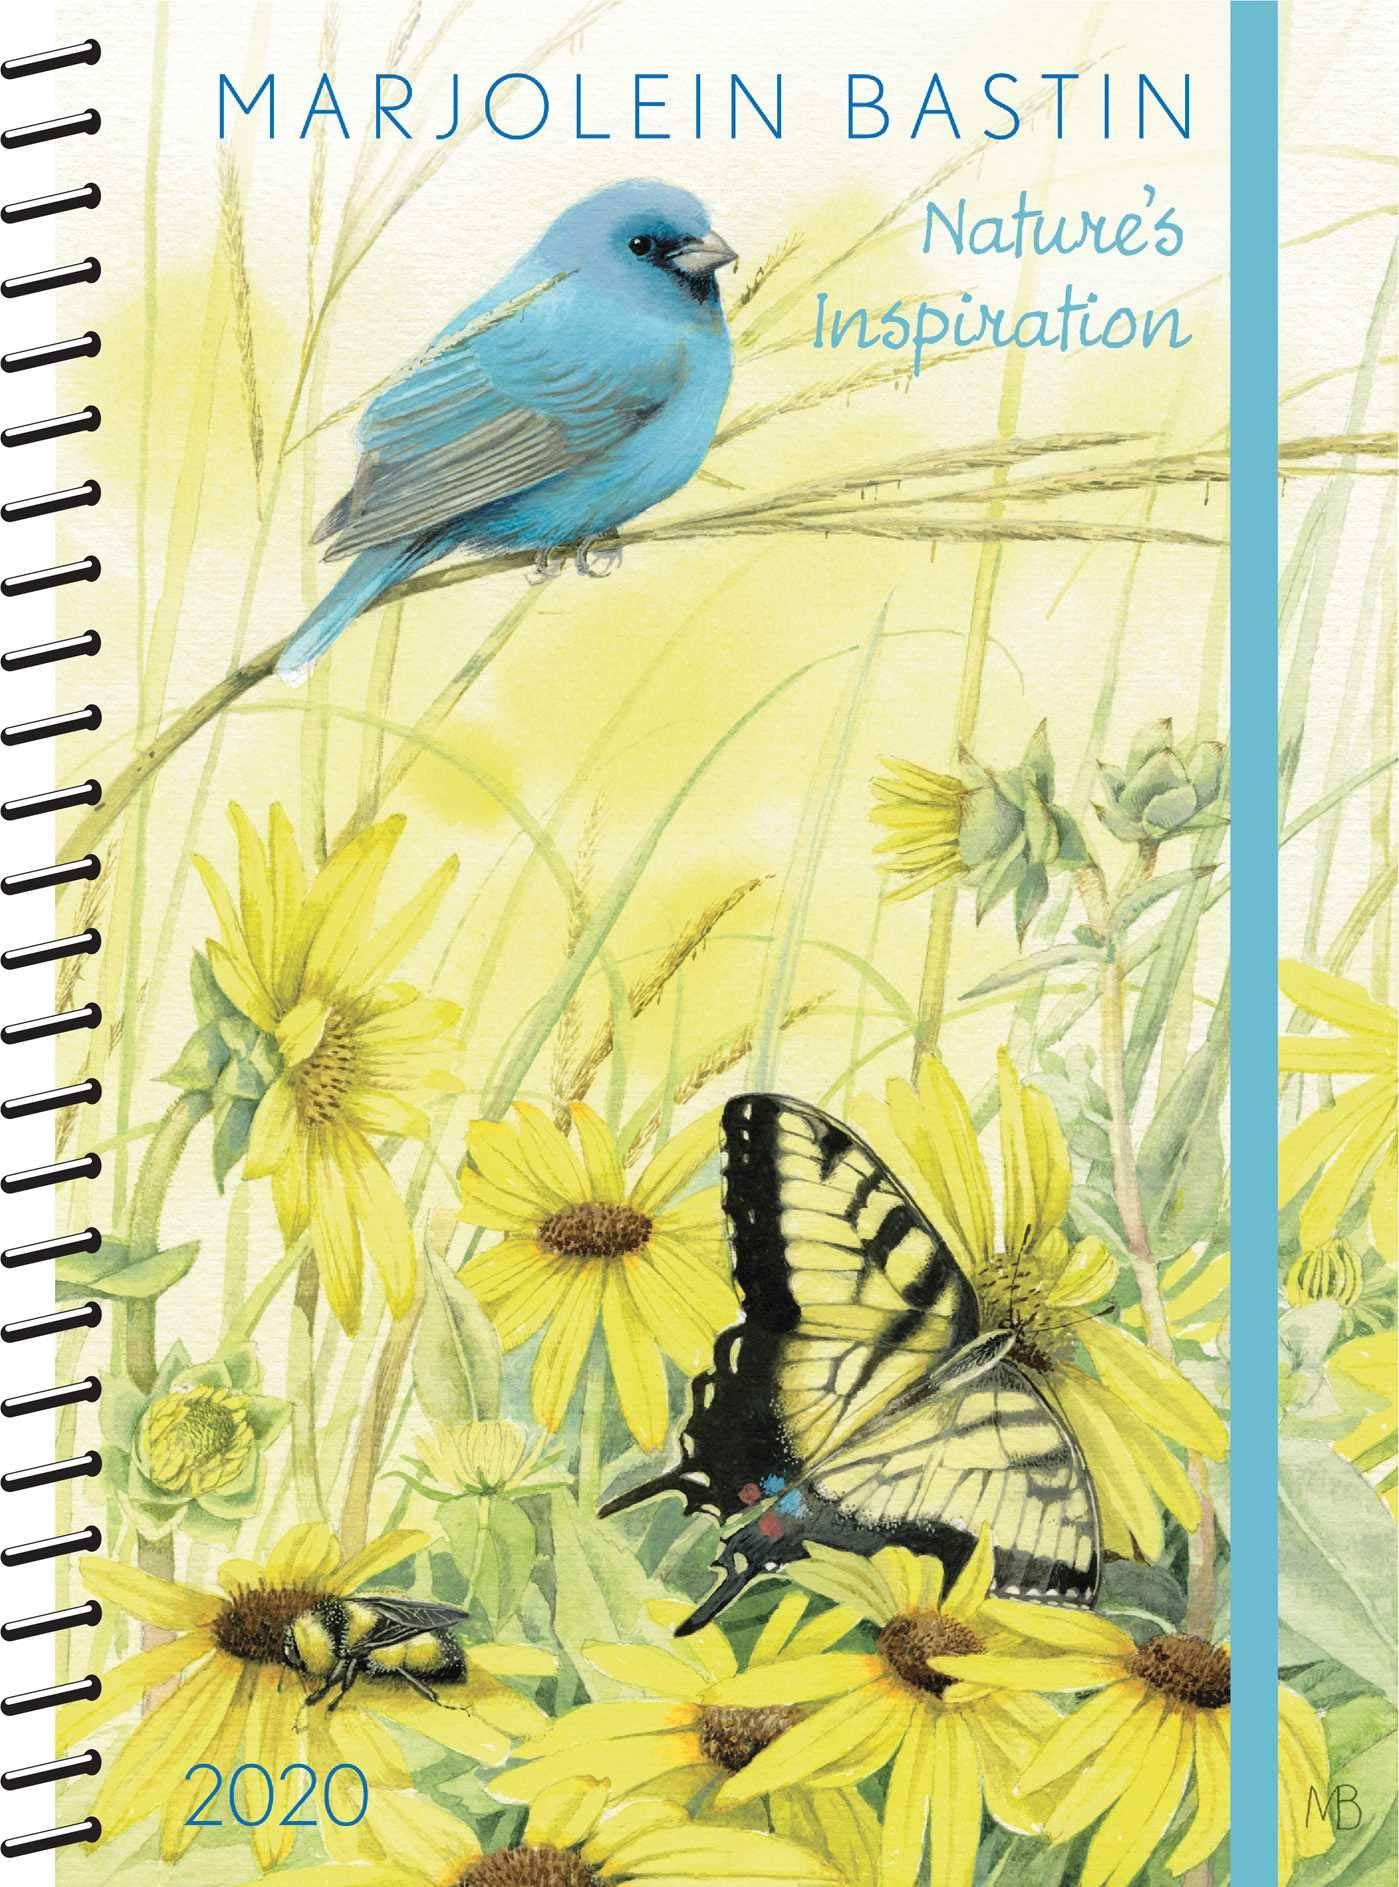 Hedendaags Marjolein Bastin 2020 Monthly/Weekly Planner Calendar: Nature's IQ-13